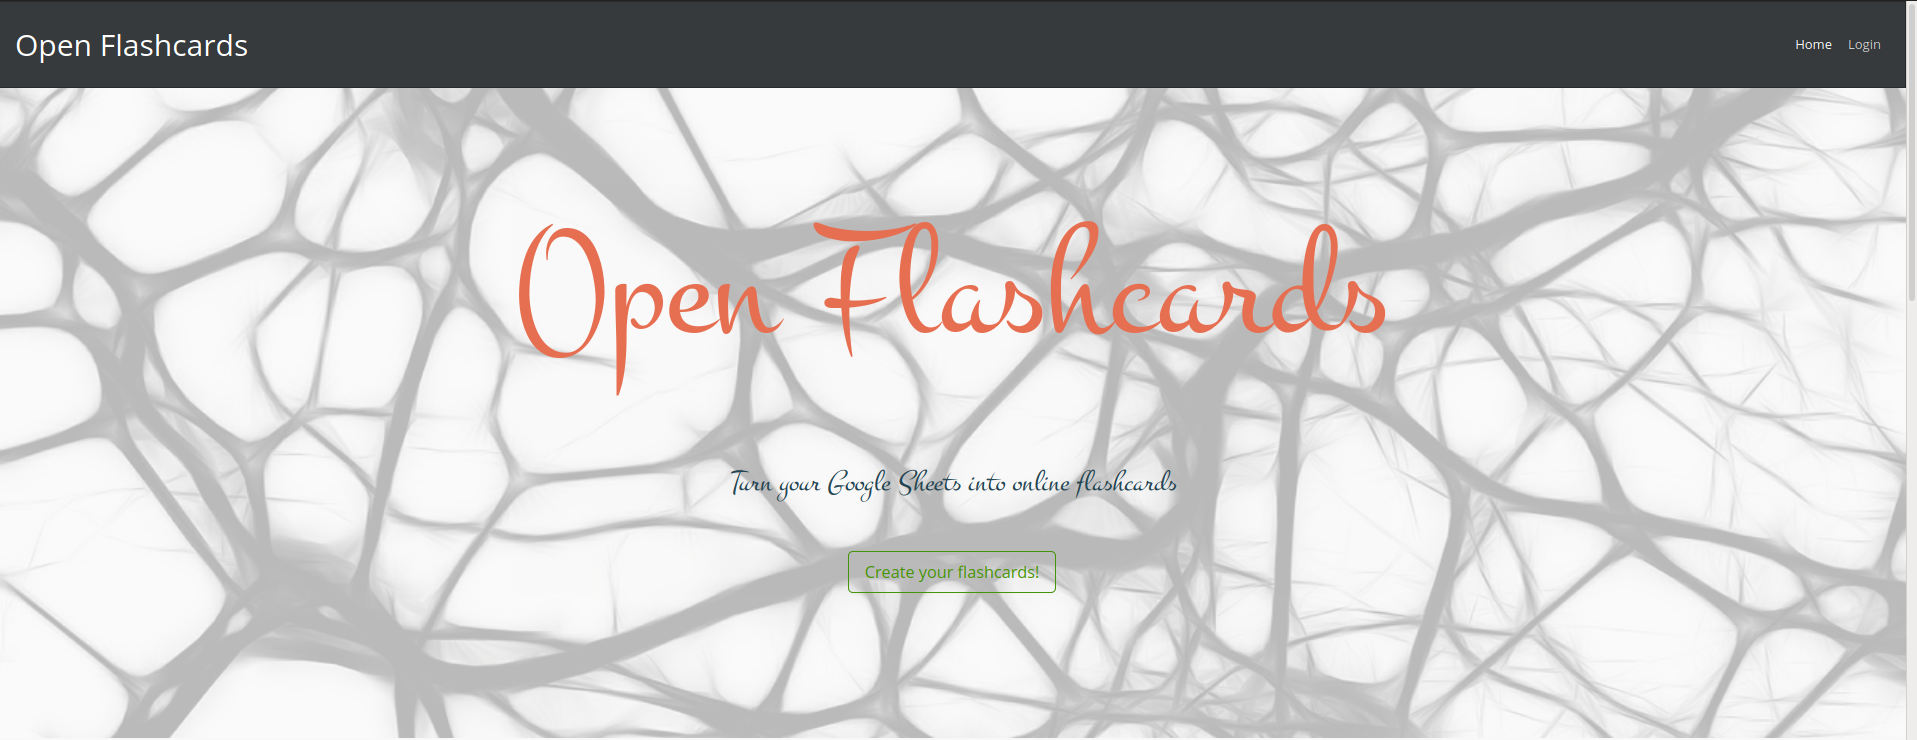 open flashcards